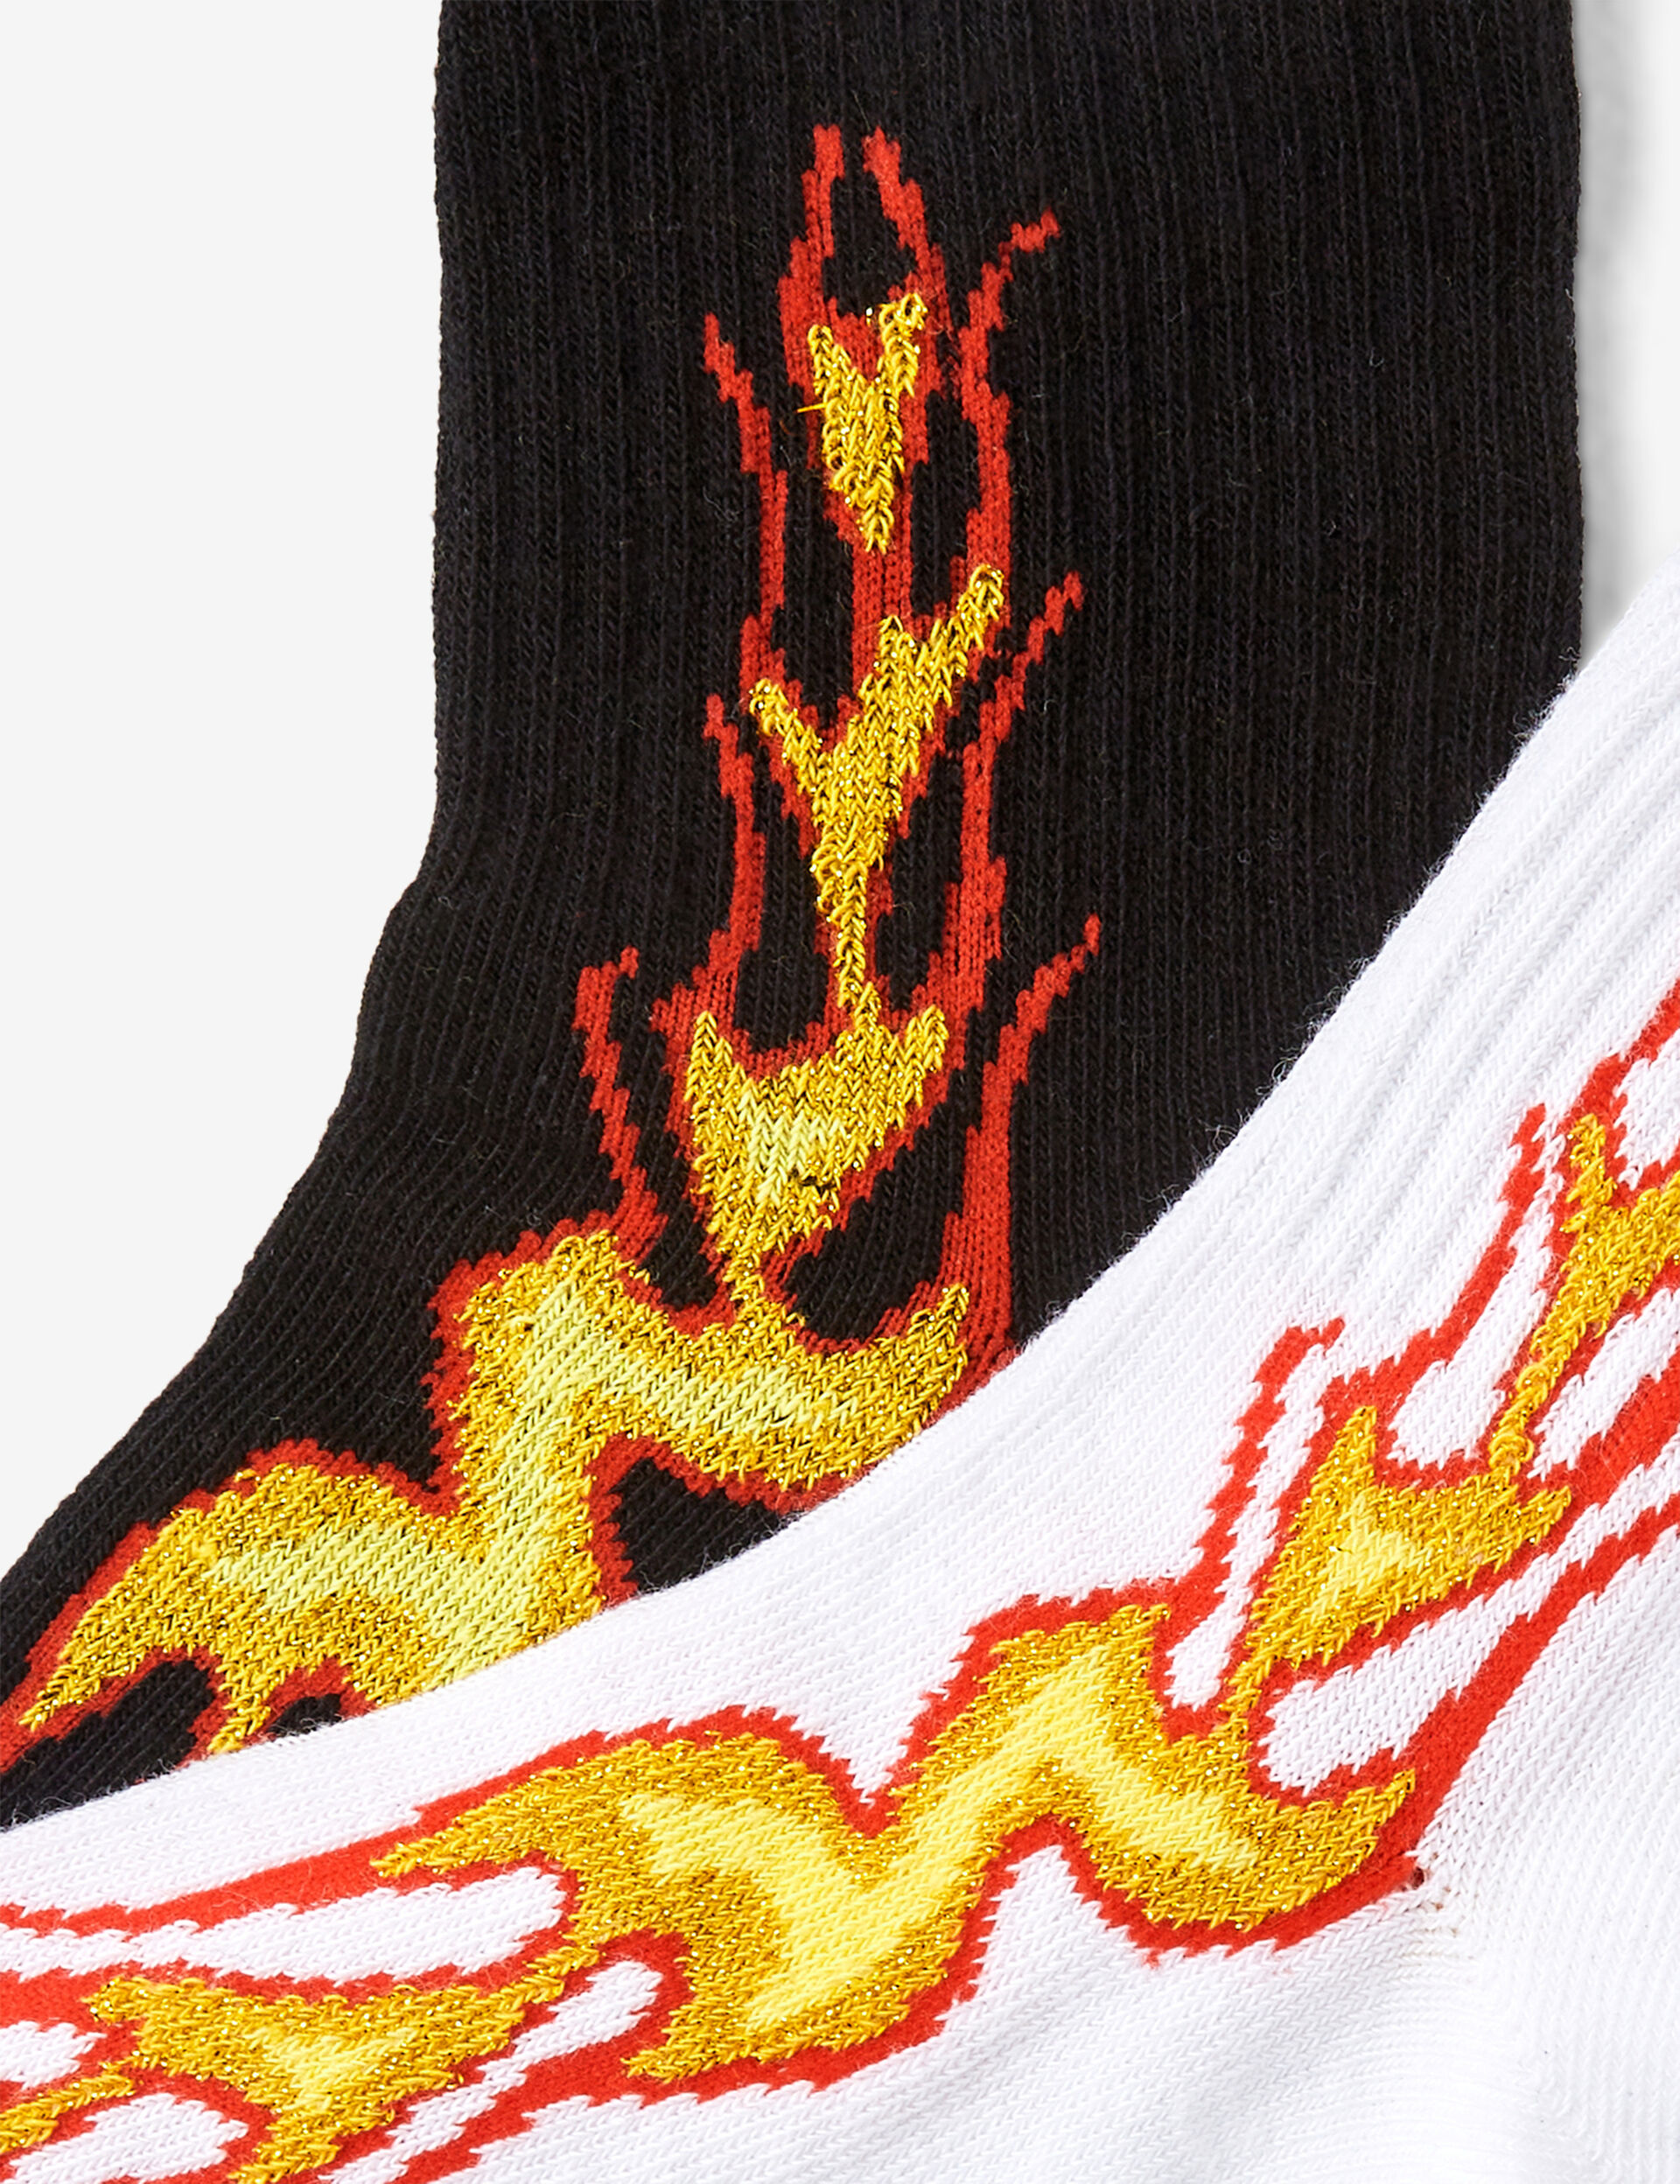 Chaussettes flammes